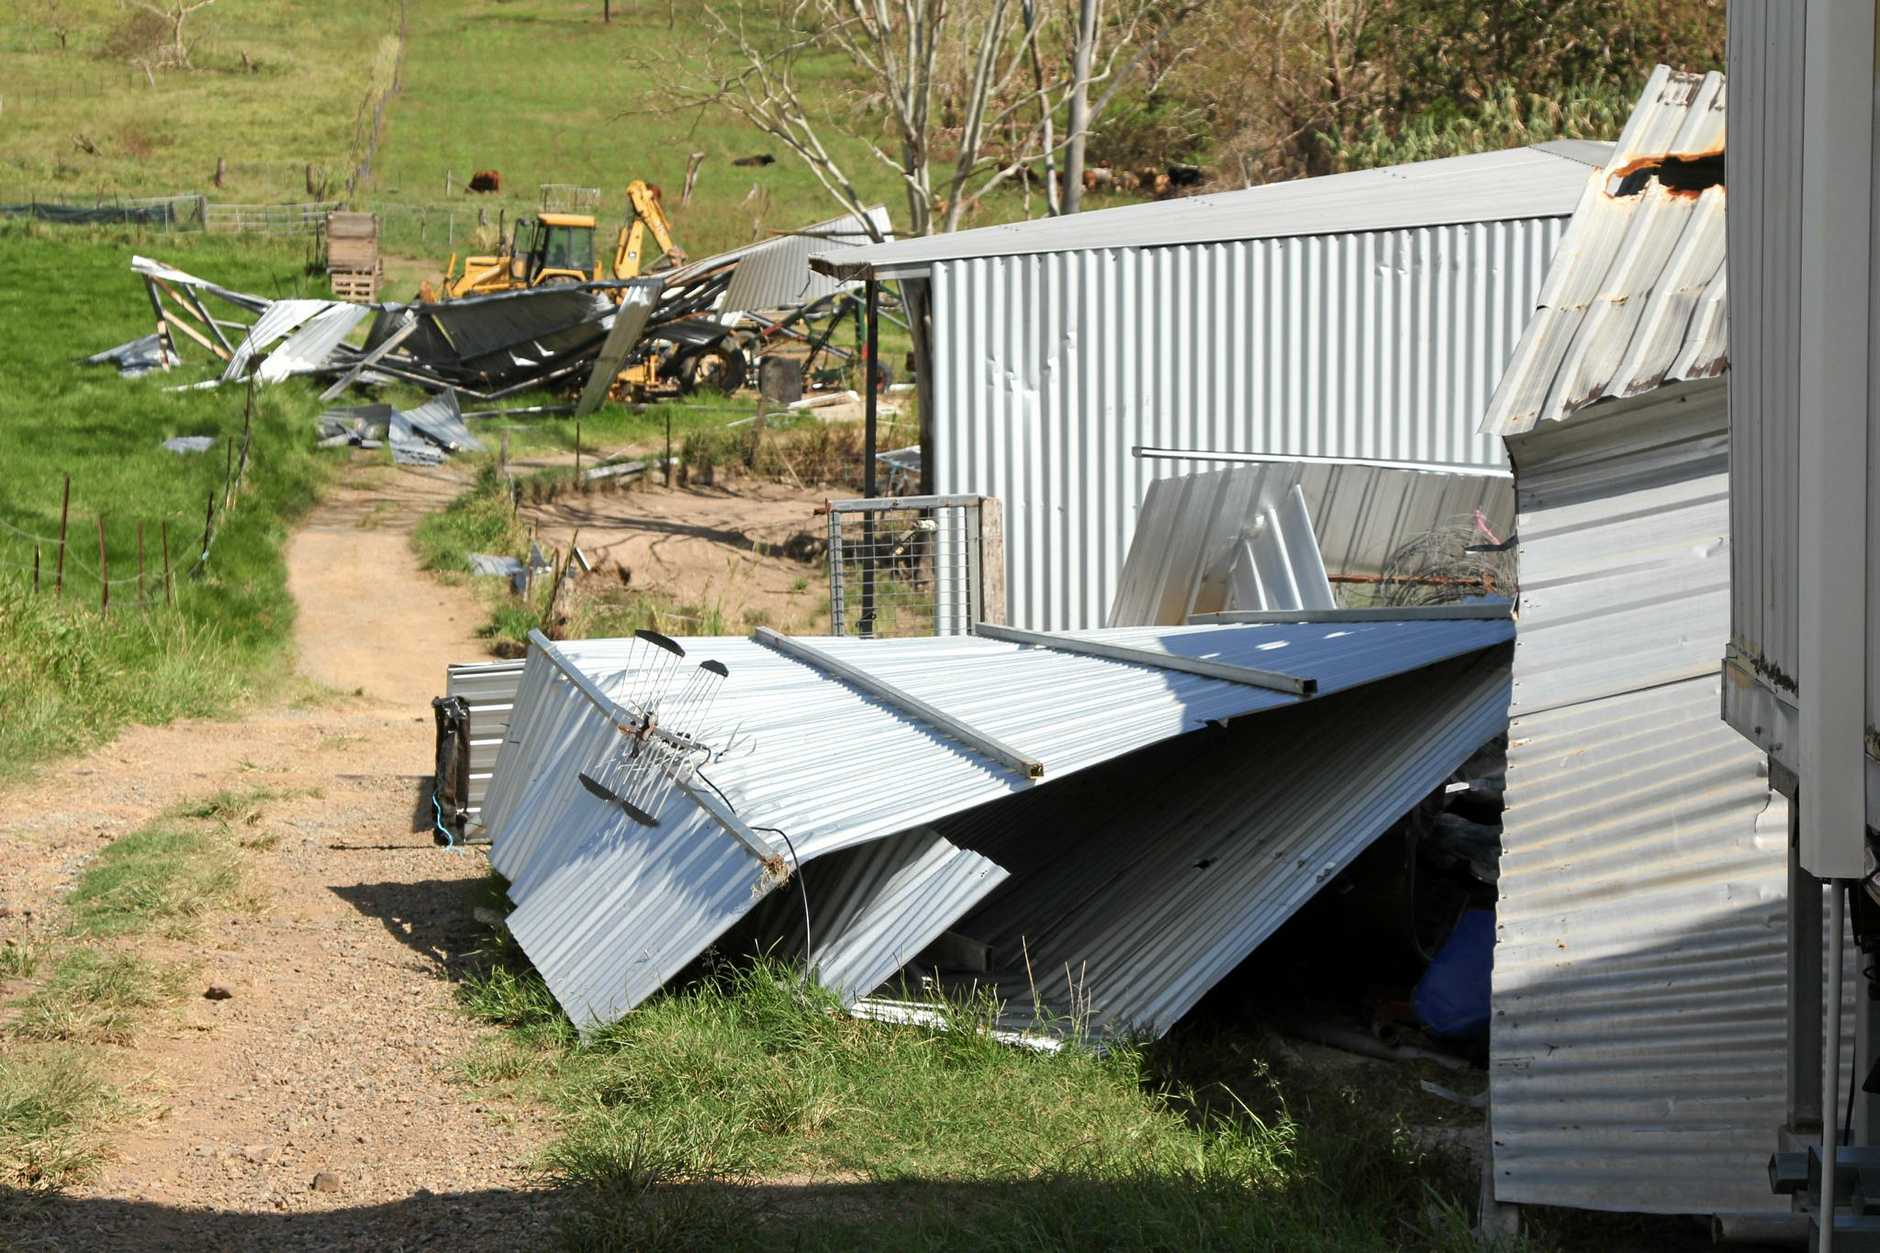 Cyclone Debbie has wreaked large scale destruction at Beefalo.